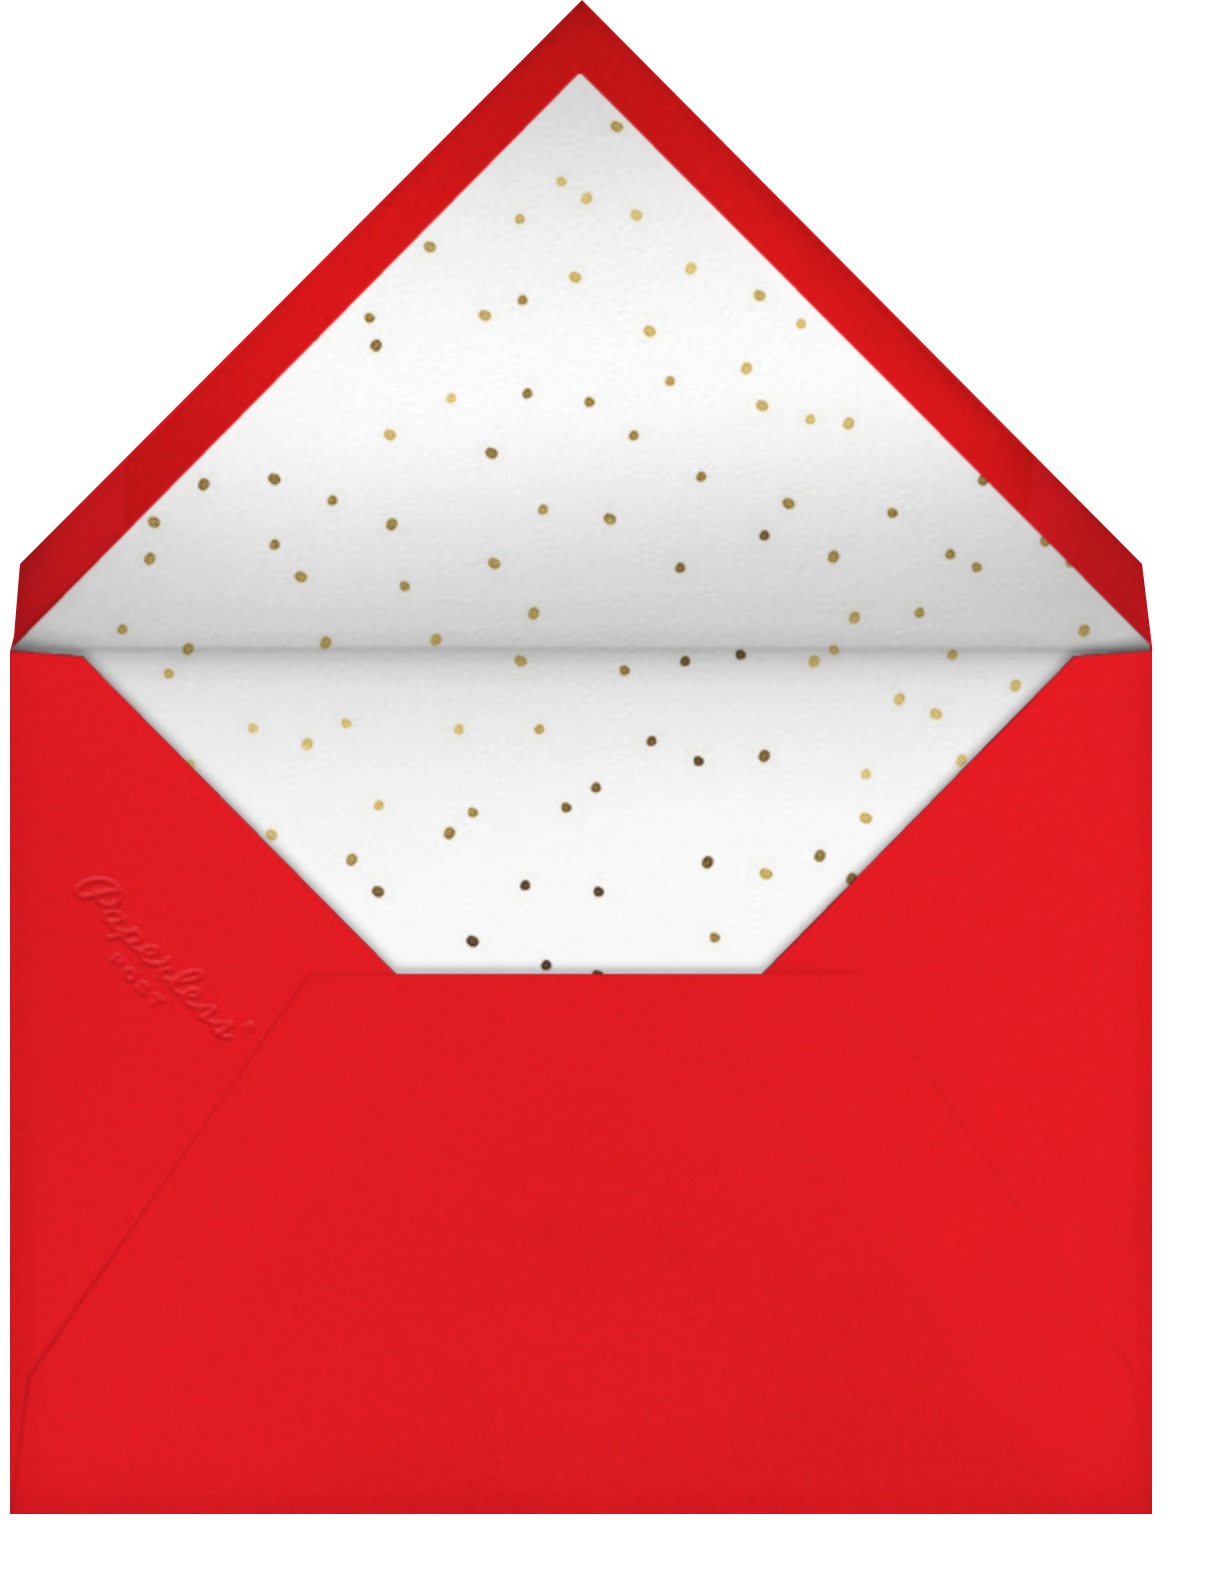 To See or Not to See - Forest Green - Paperless Post - Envelope